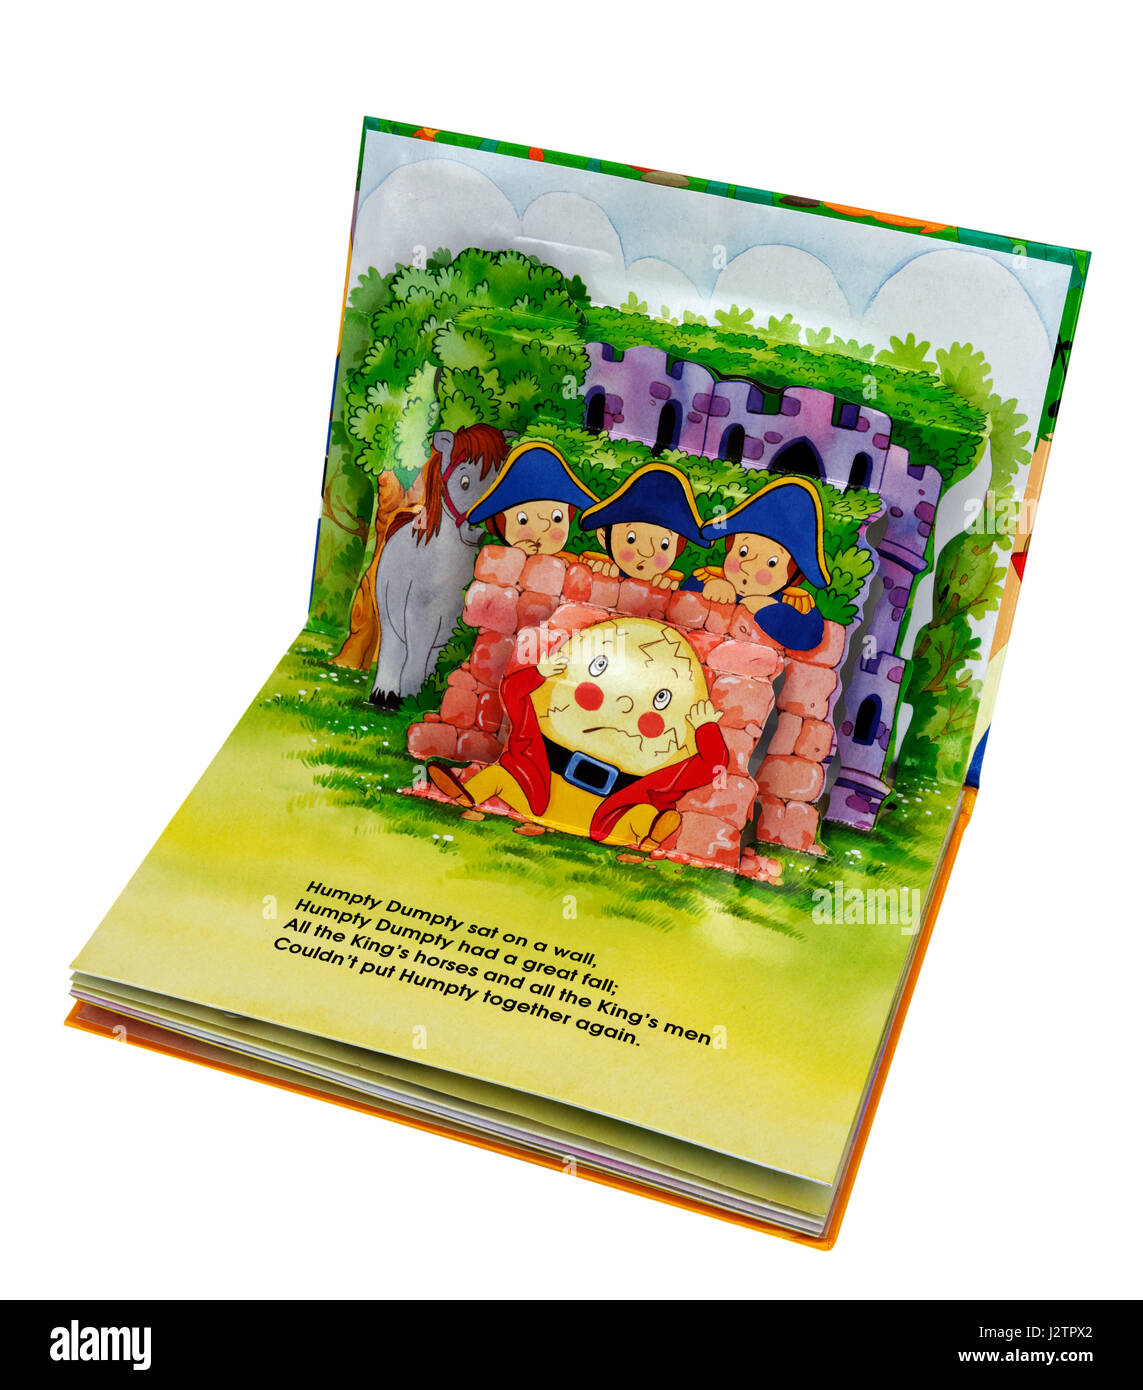 The nursery rhyme Humpty Dumpty in a pop-up book of nursery rhymes - Stock Image